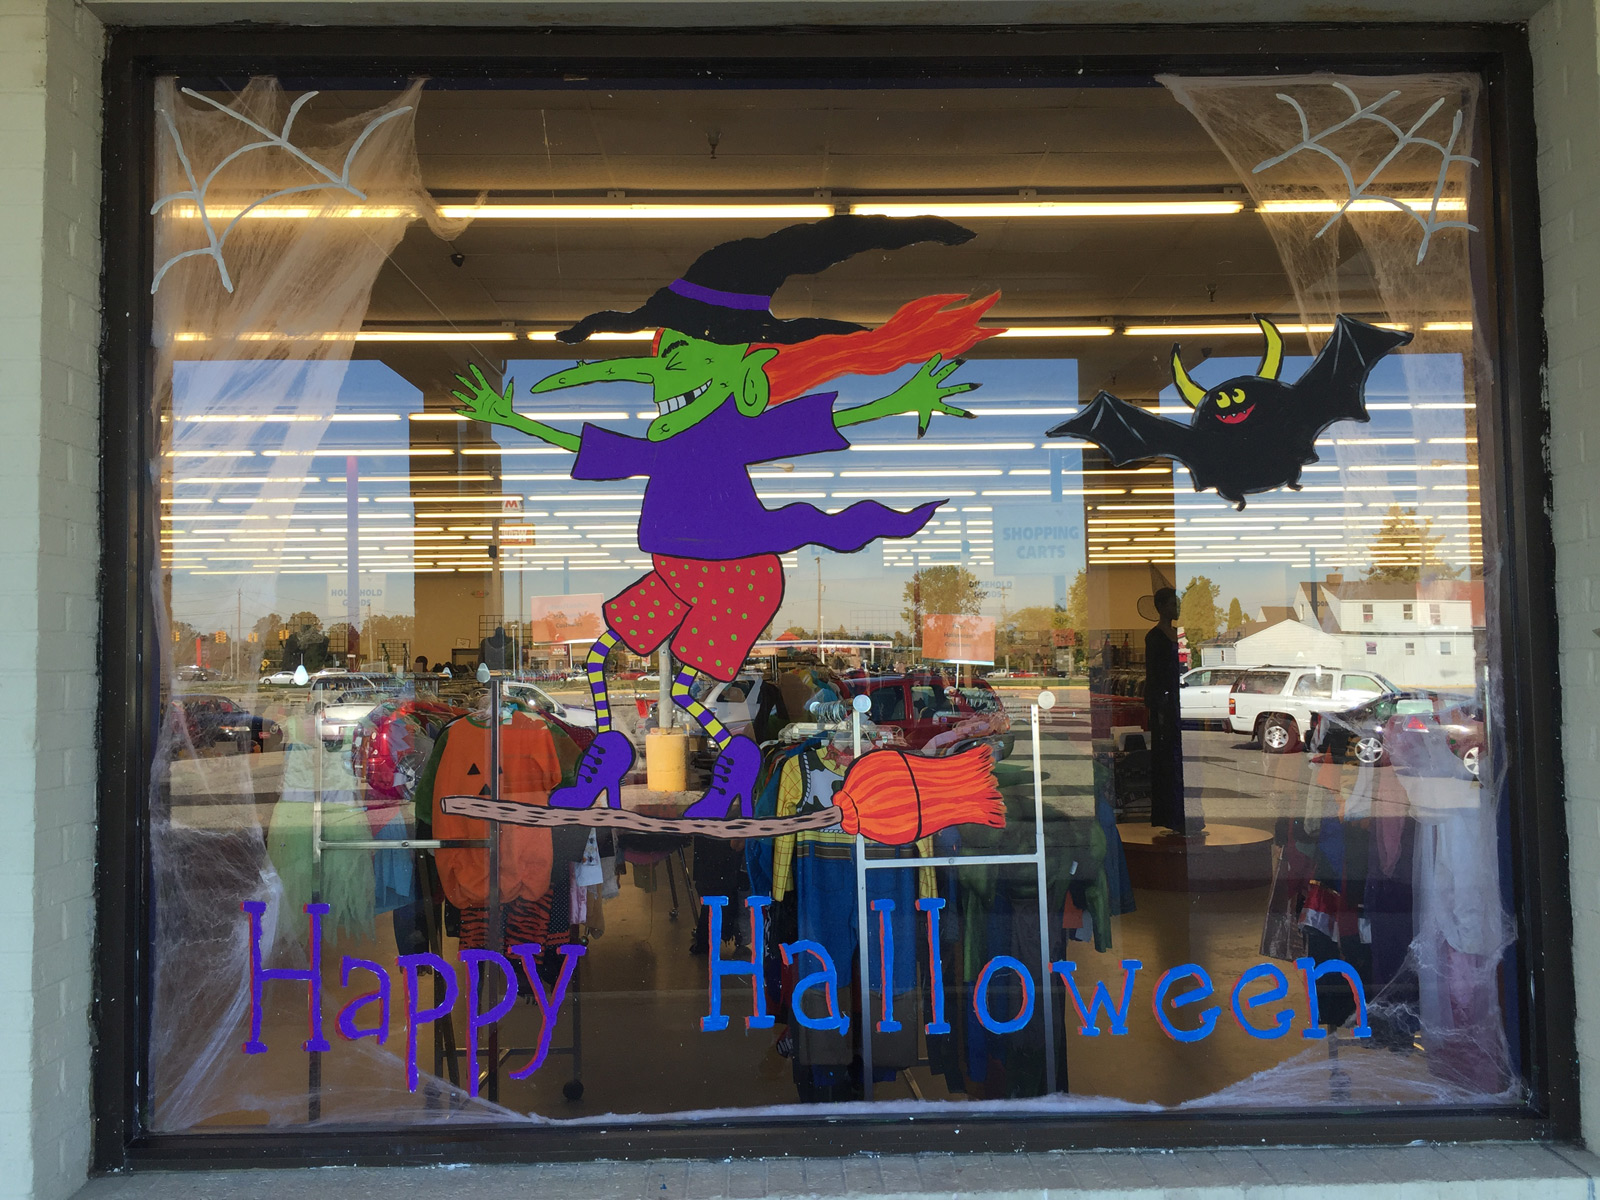 What a funny type of a Halloween window display, with a comic witch practicing balance on a broomstick.